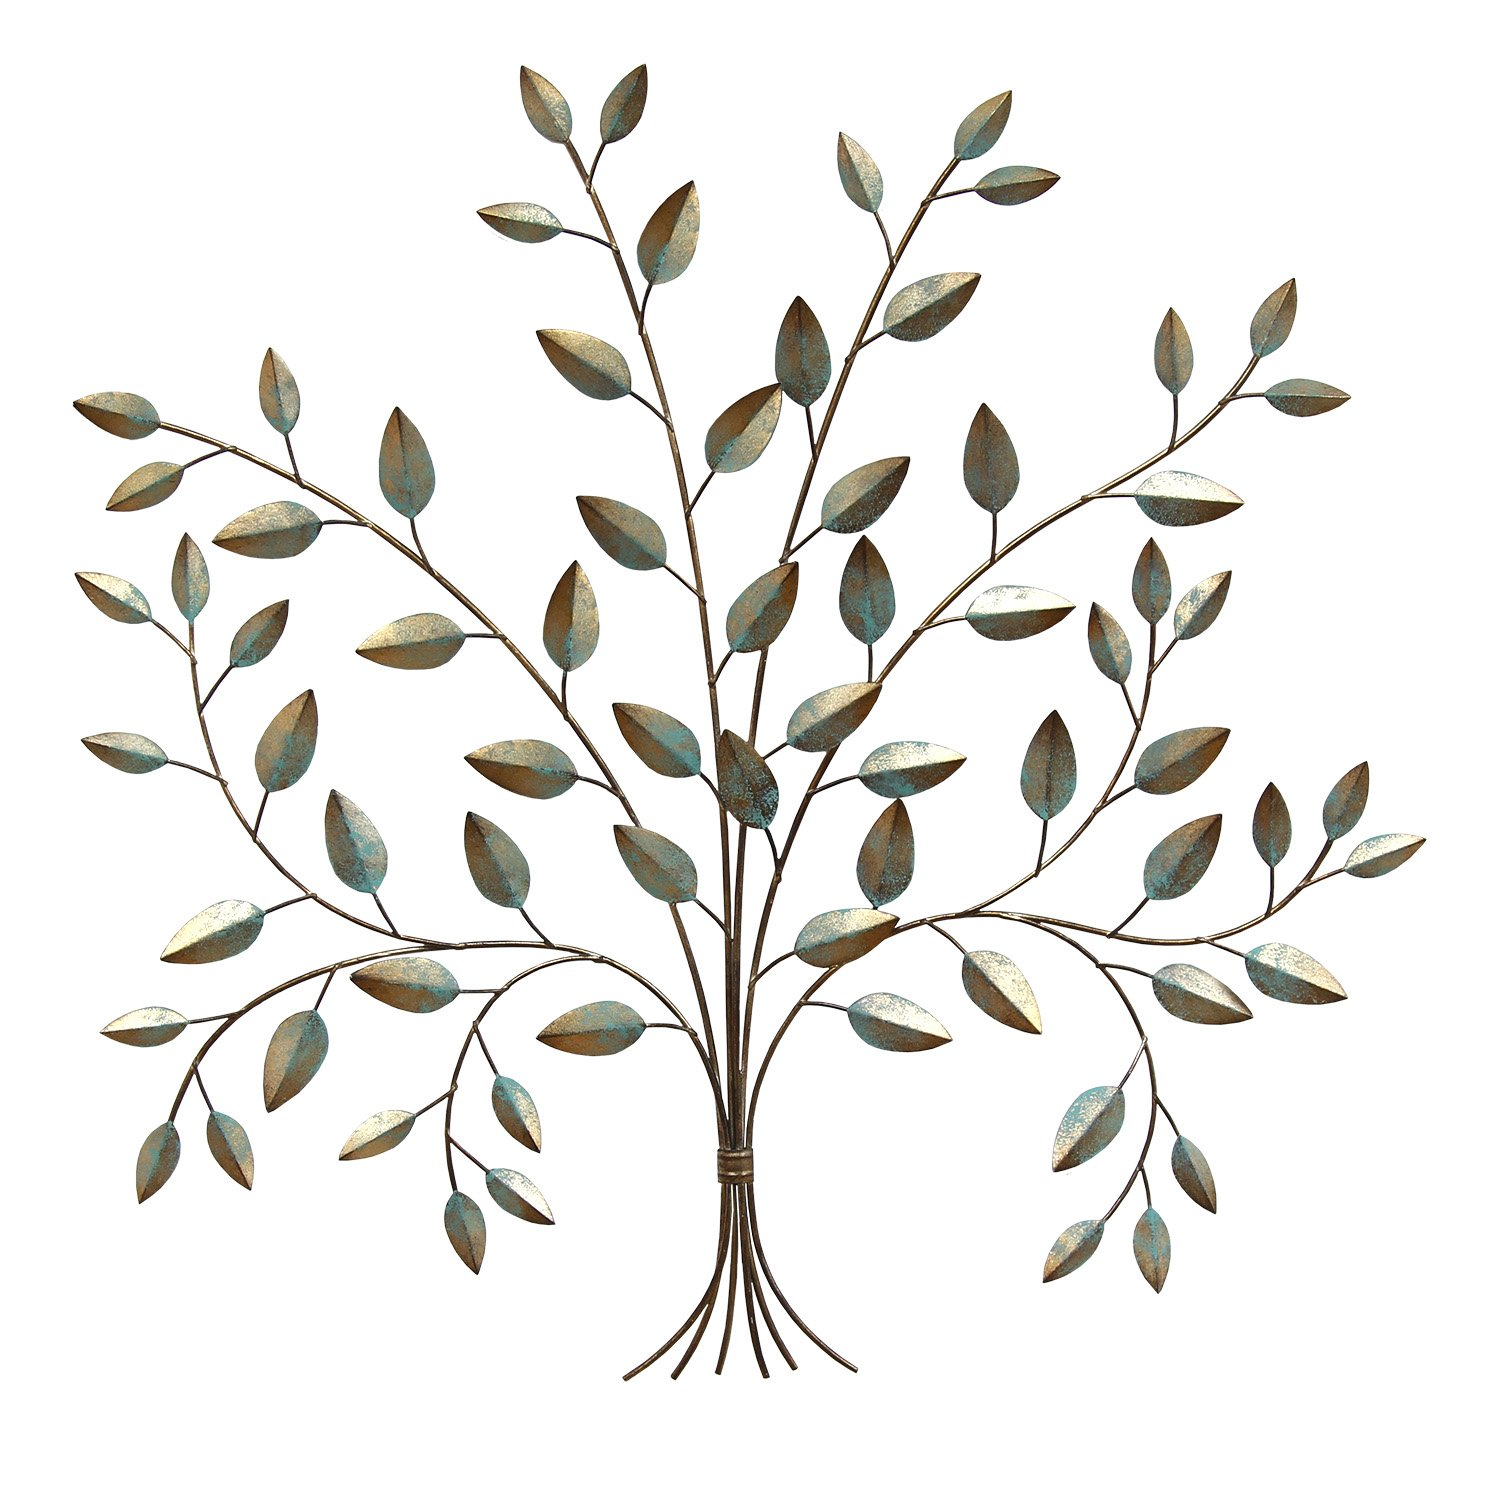 Stratton Home Decor S07692 Tree of Life Wall Decor, 24.00 W x 0.50 D x 24.00 H, Patina